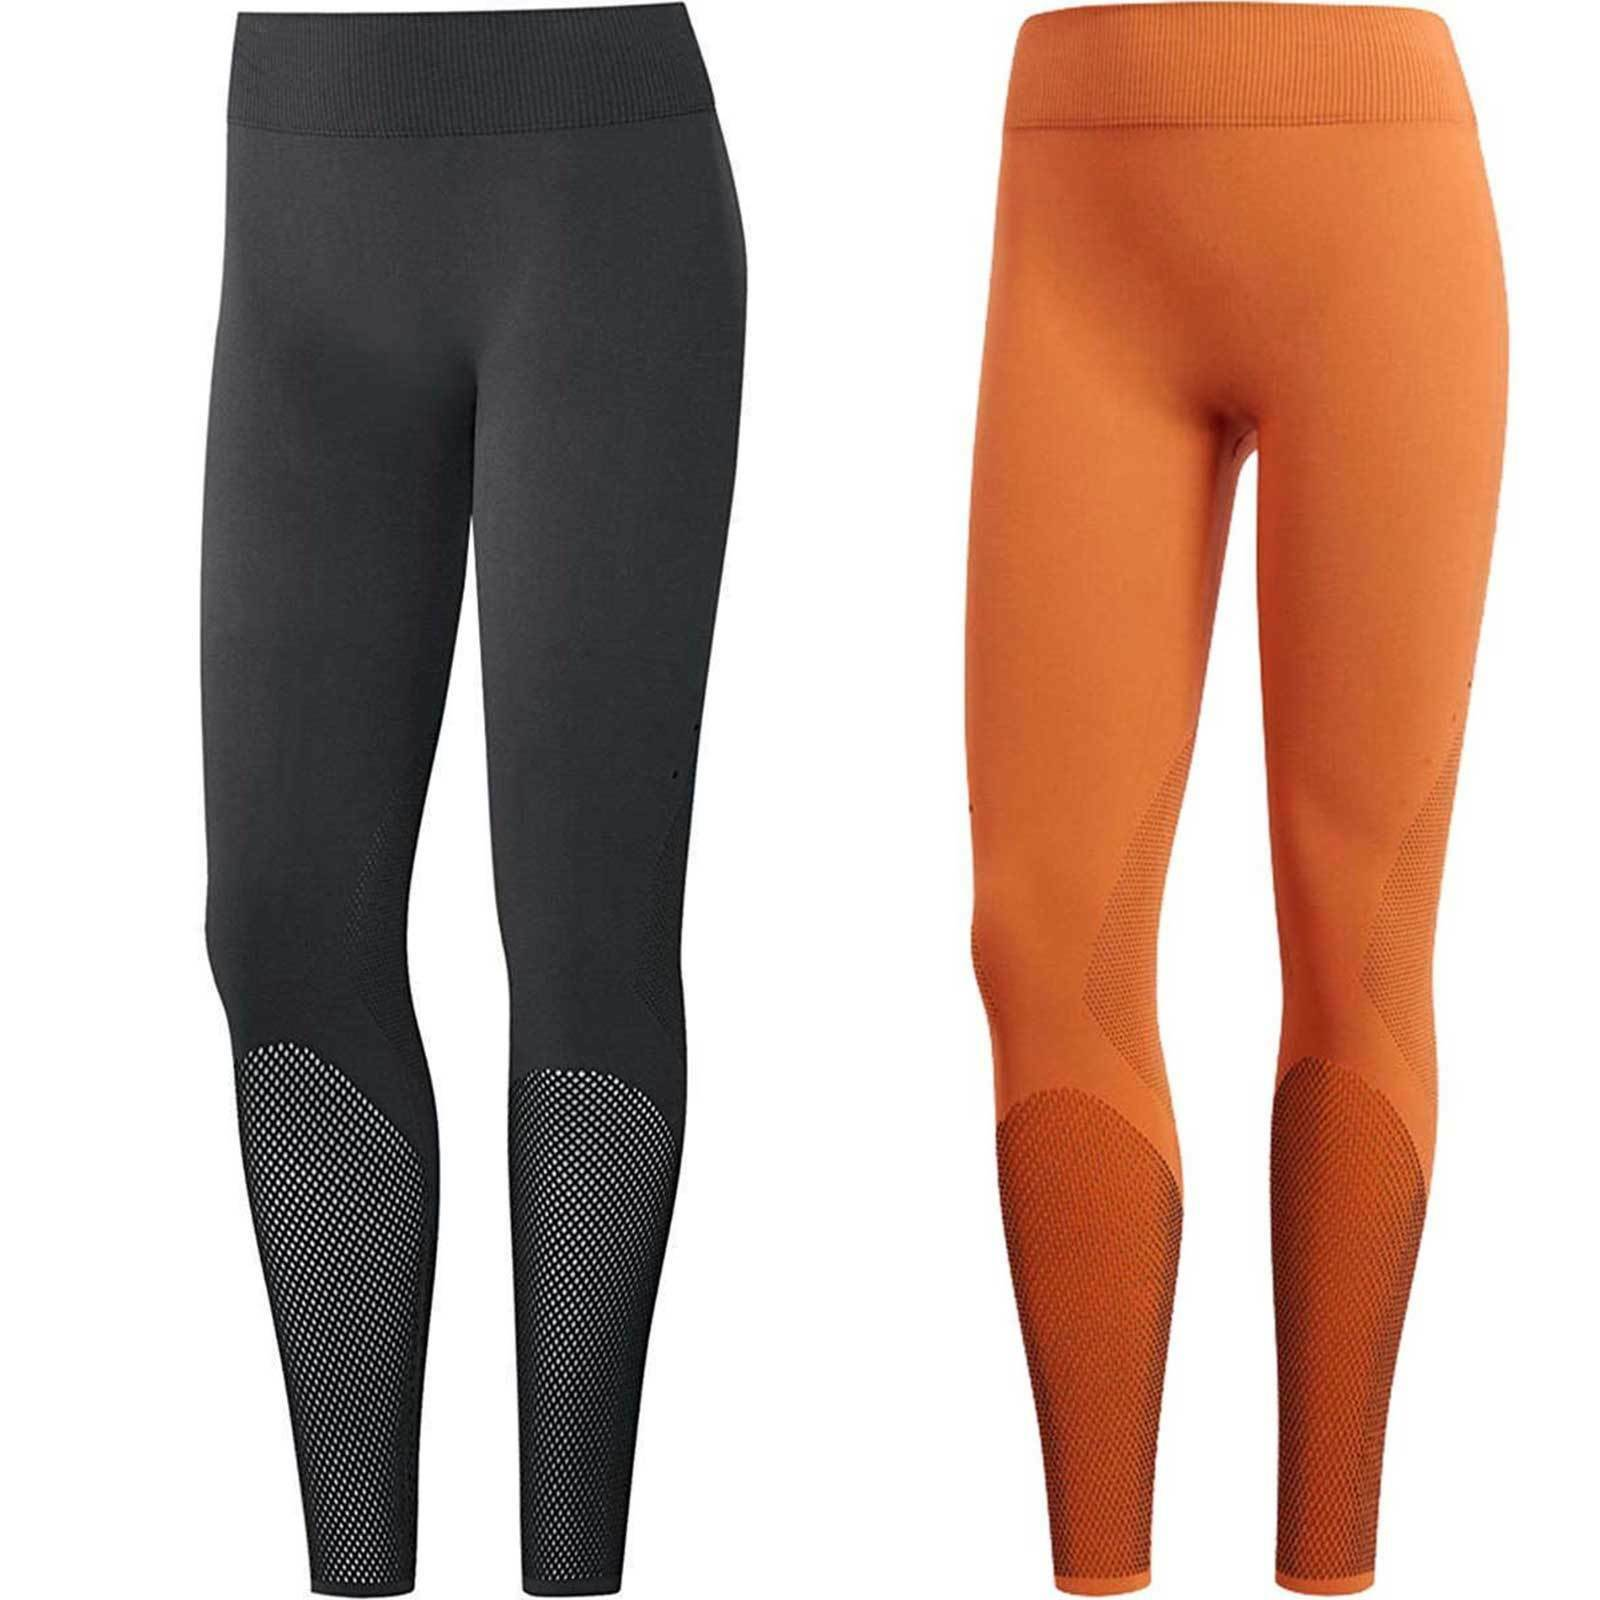 NEW Adidas Women's Athletic Apparel Warp Knit Workout Training Tights